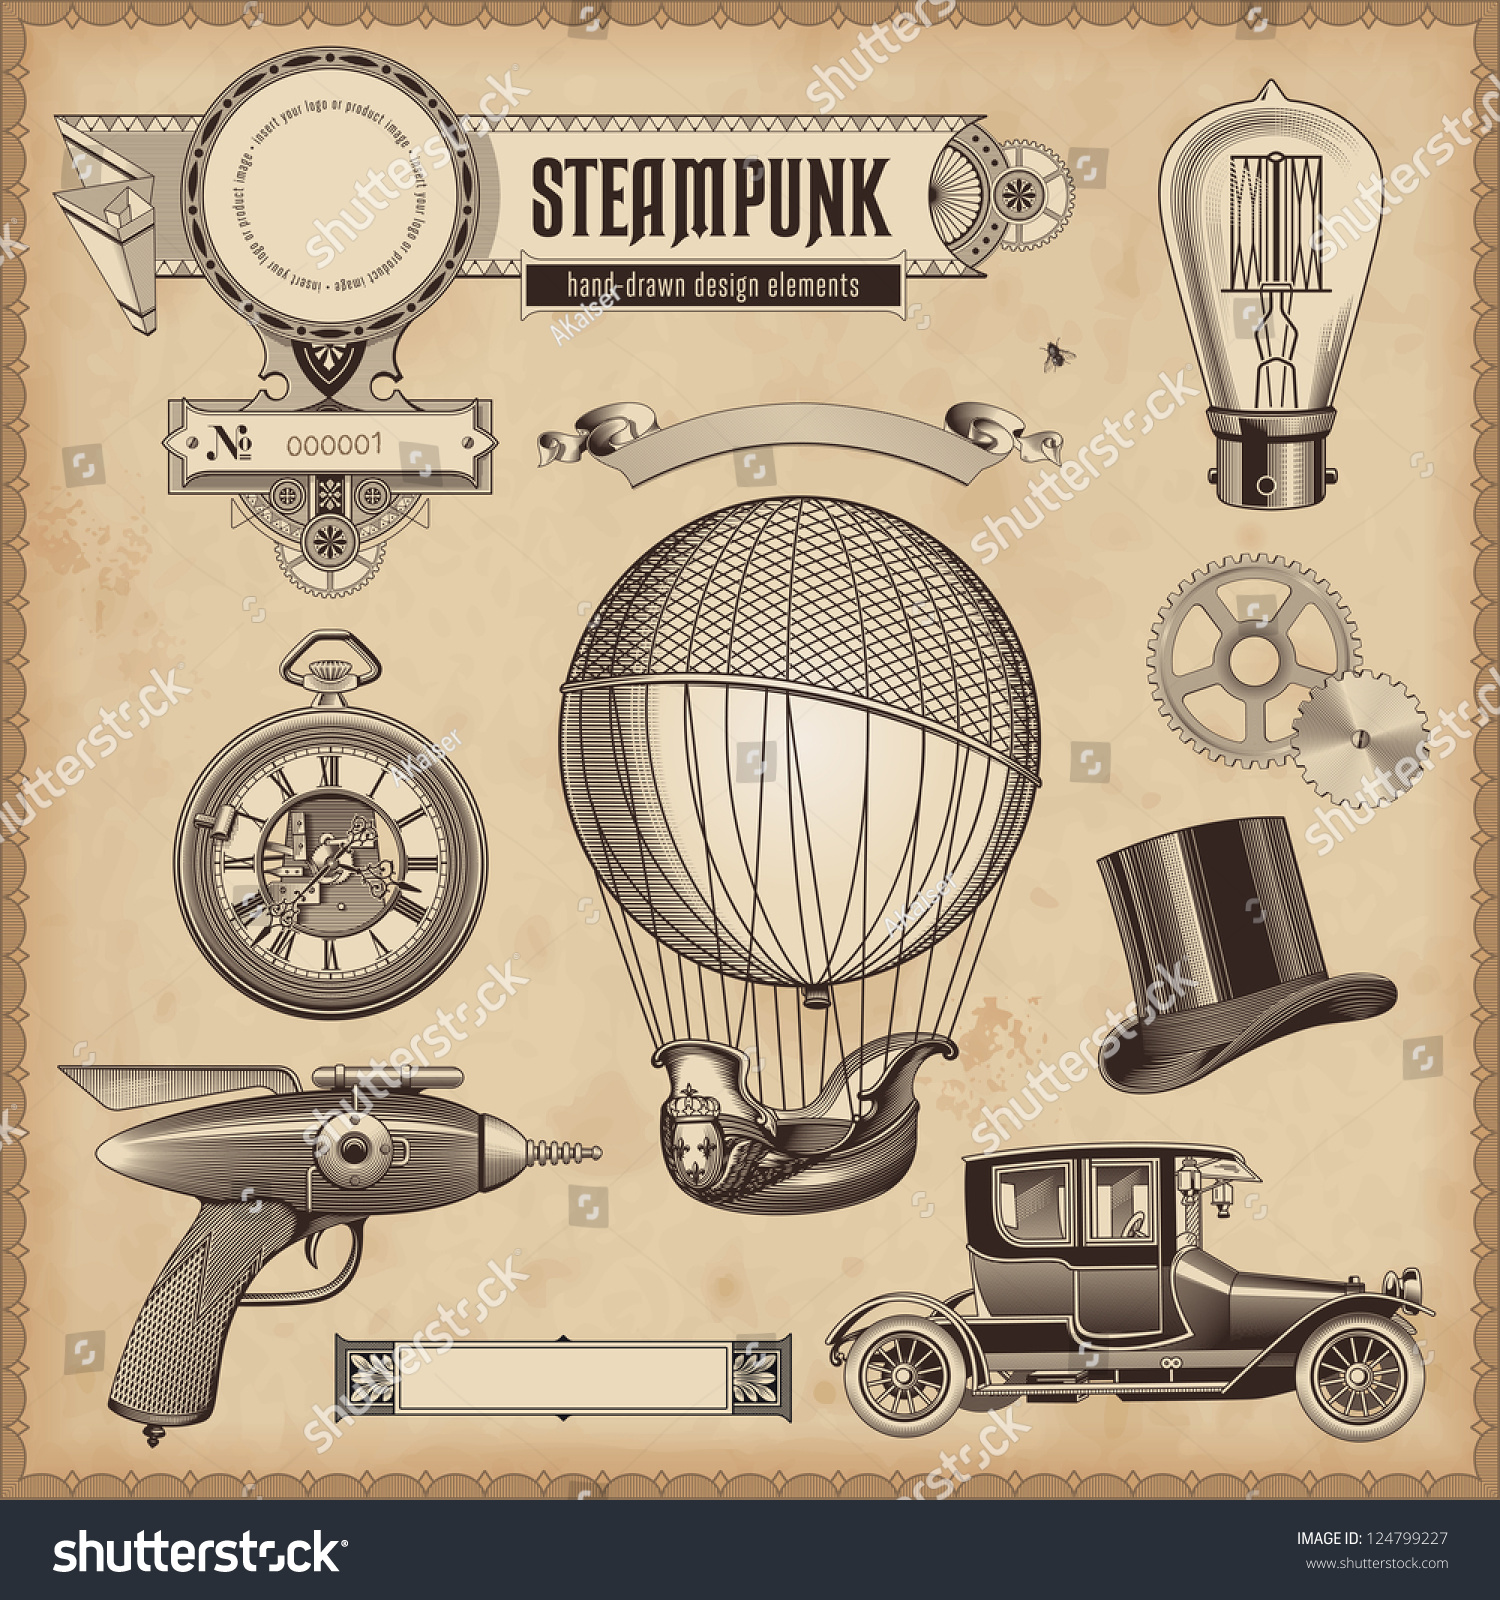 Vector set steampunk design elements stock vector for What is steampunk design